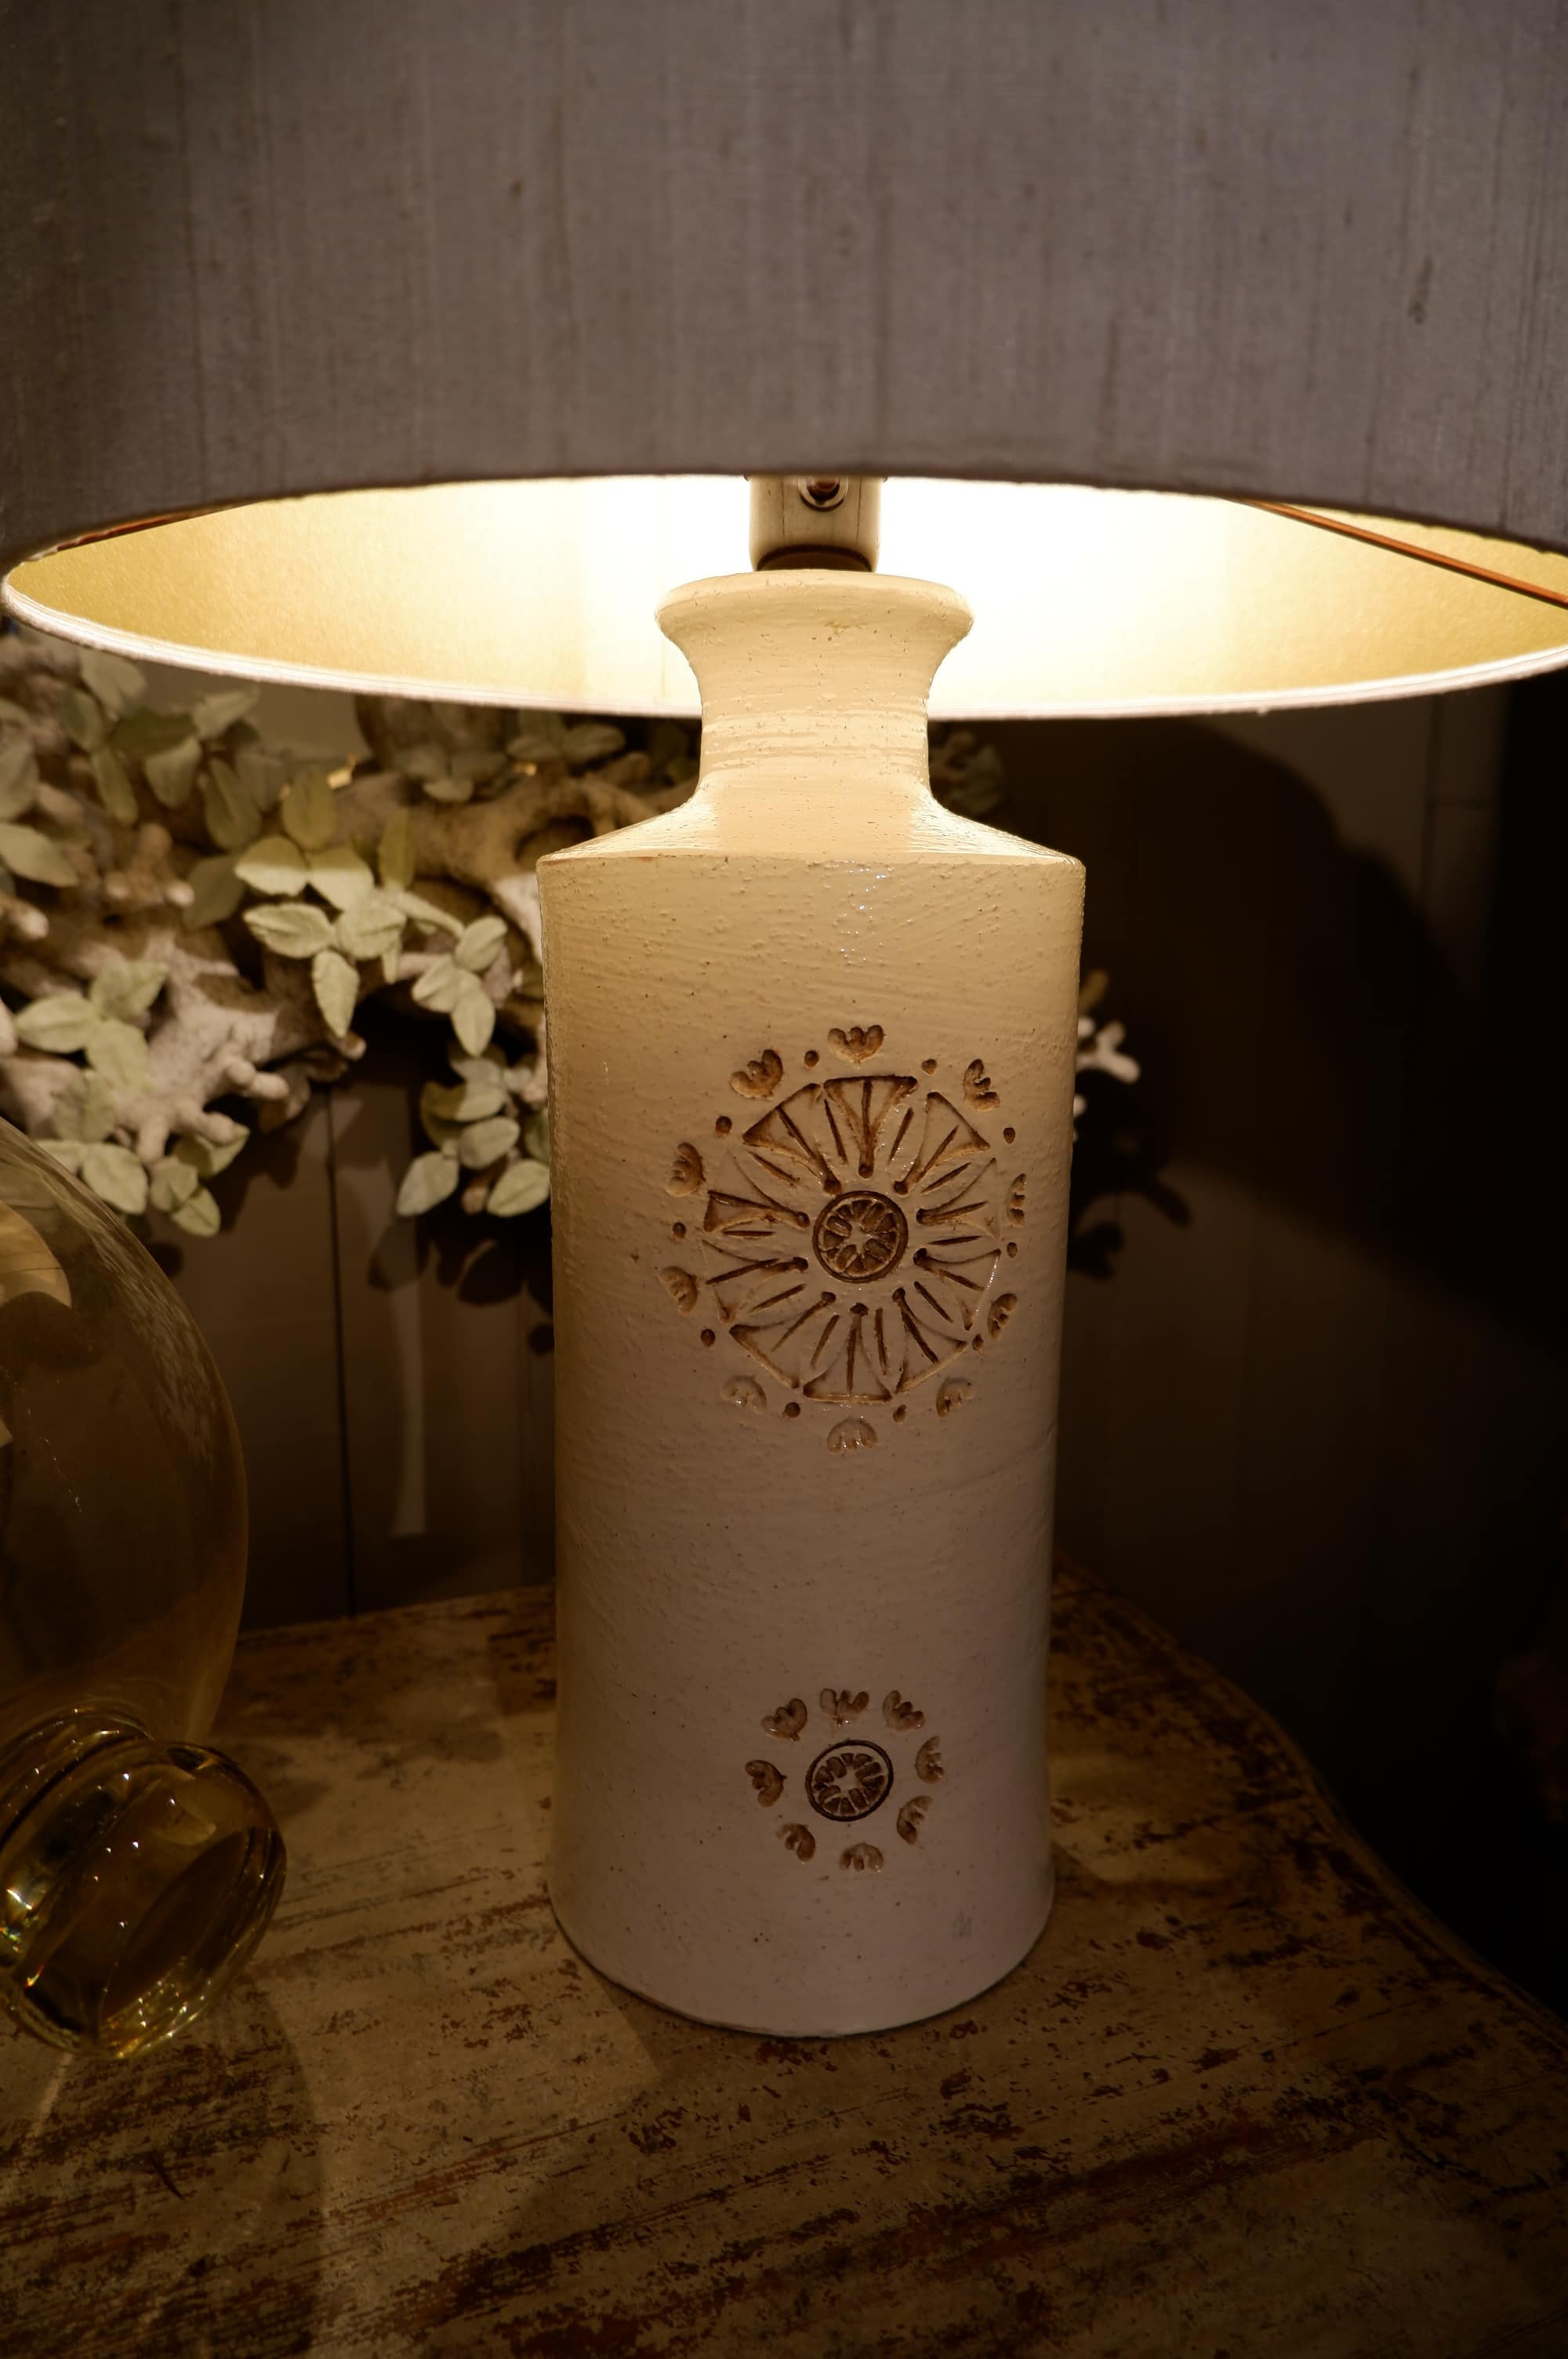 Off- white ceramic table lampe with flower pattern by Bergboms-Sweden 1960